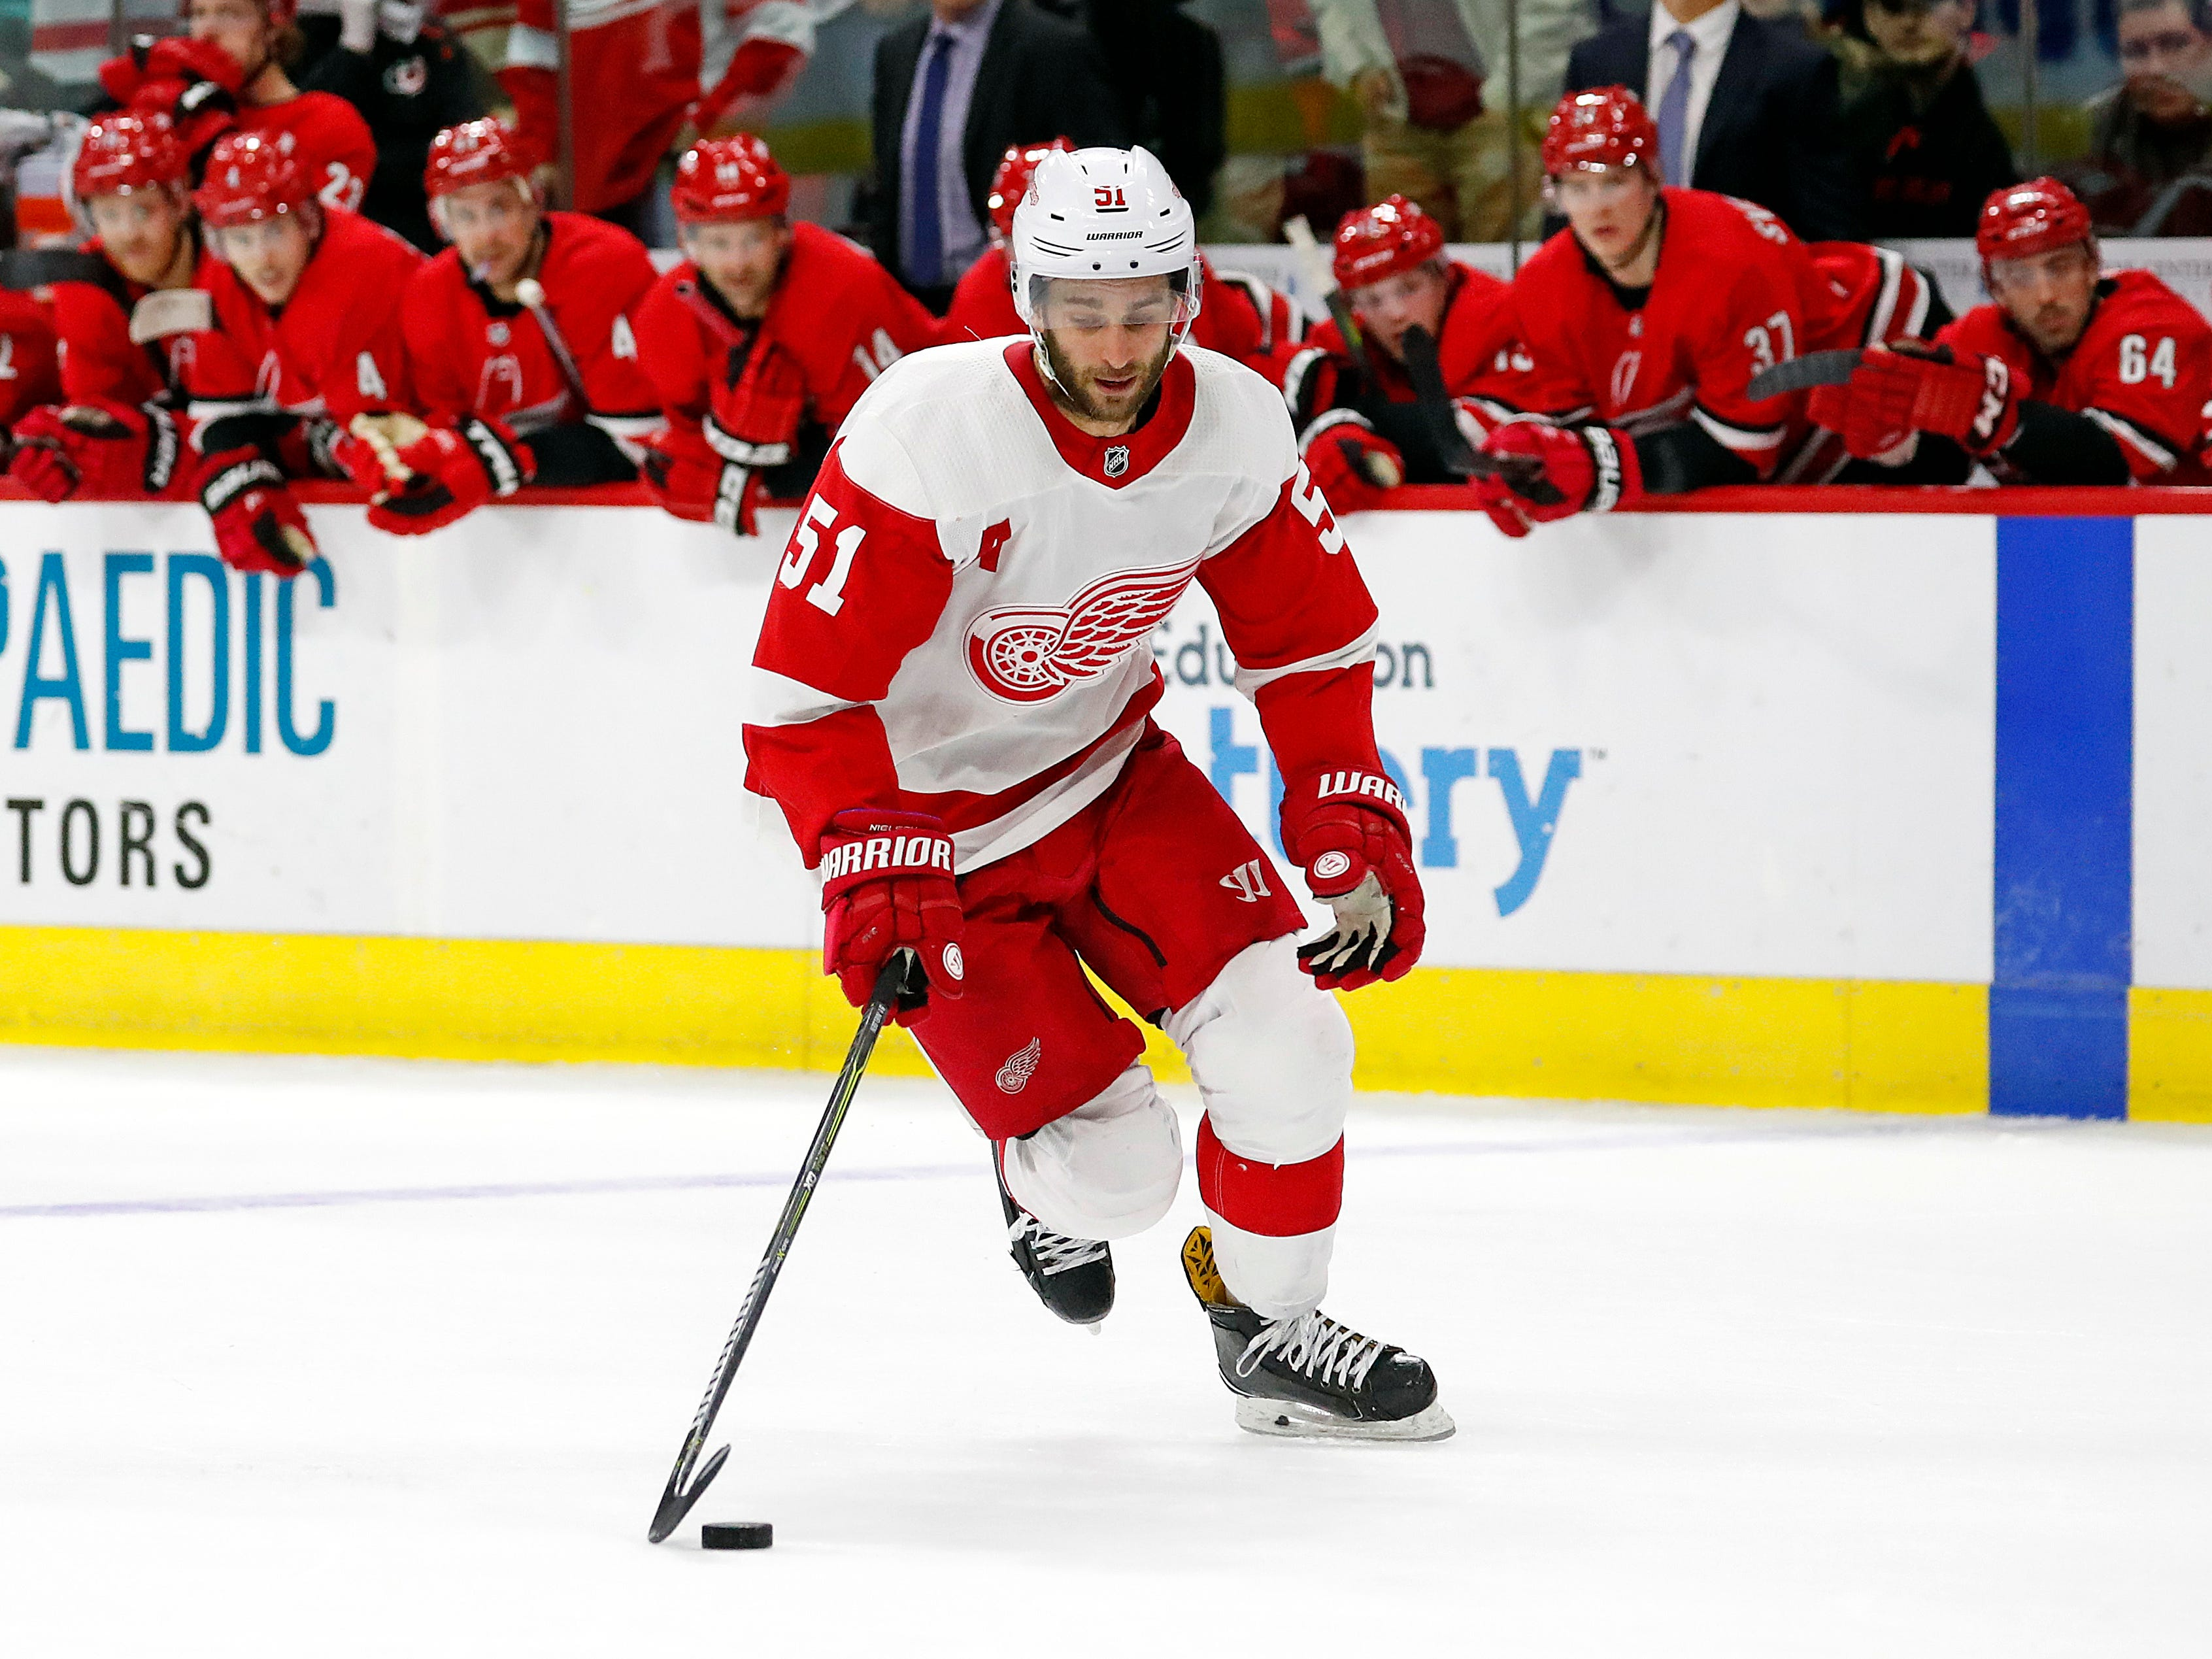 Detroit Red Wings' Frans Nielsen (51) brings the puck up the ice during the third round of the shootout as the Carolina Hurricanes watch from the bench.